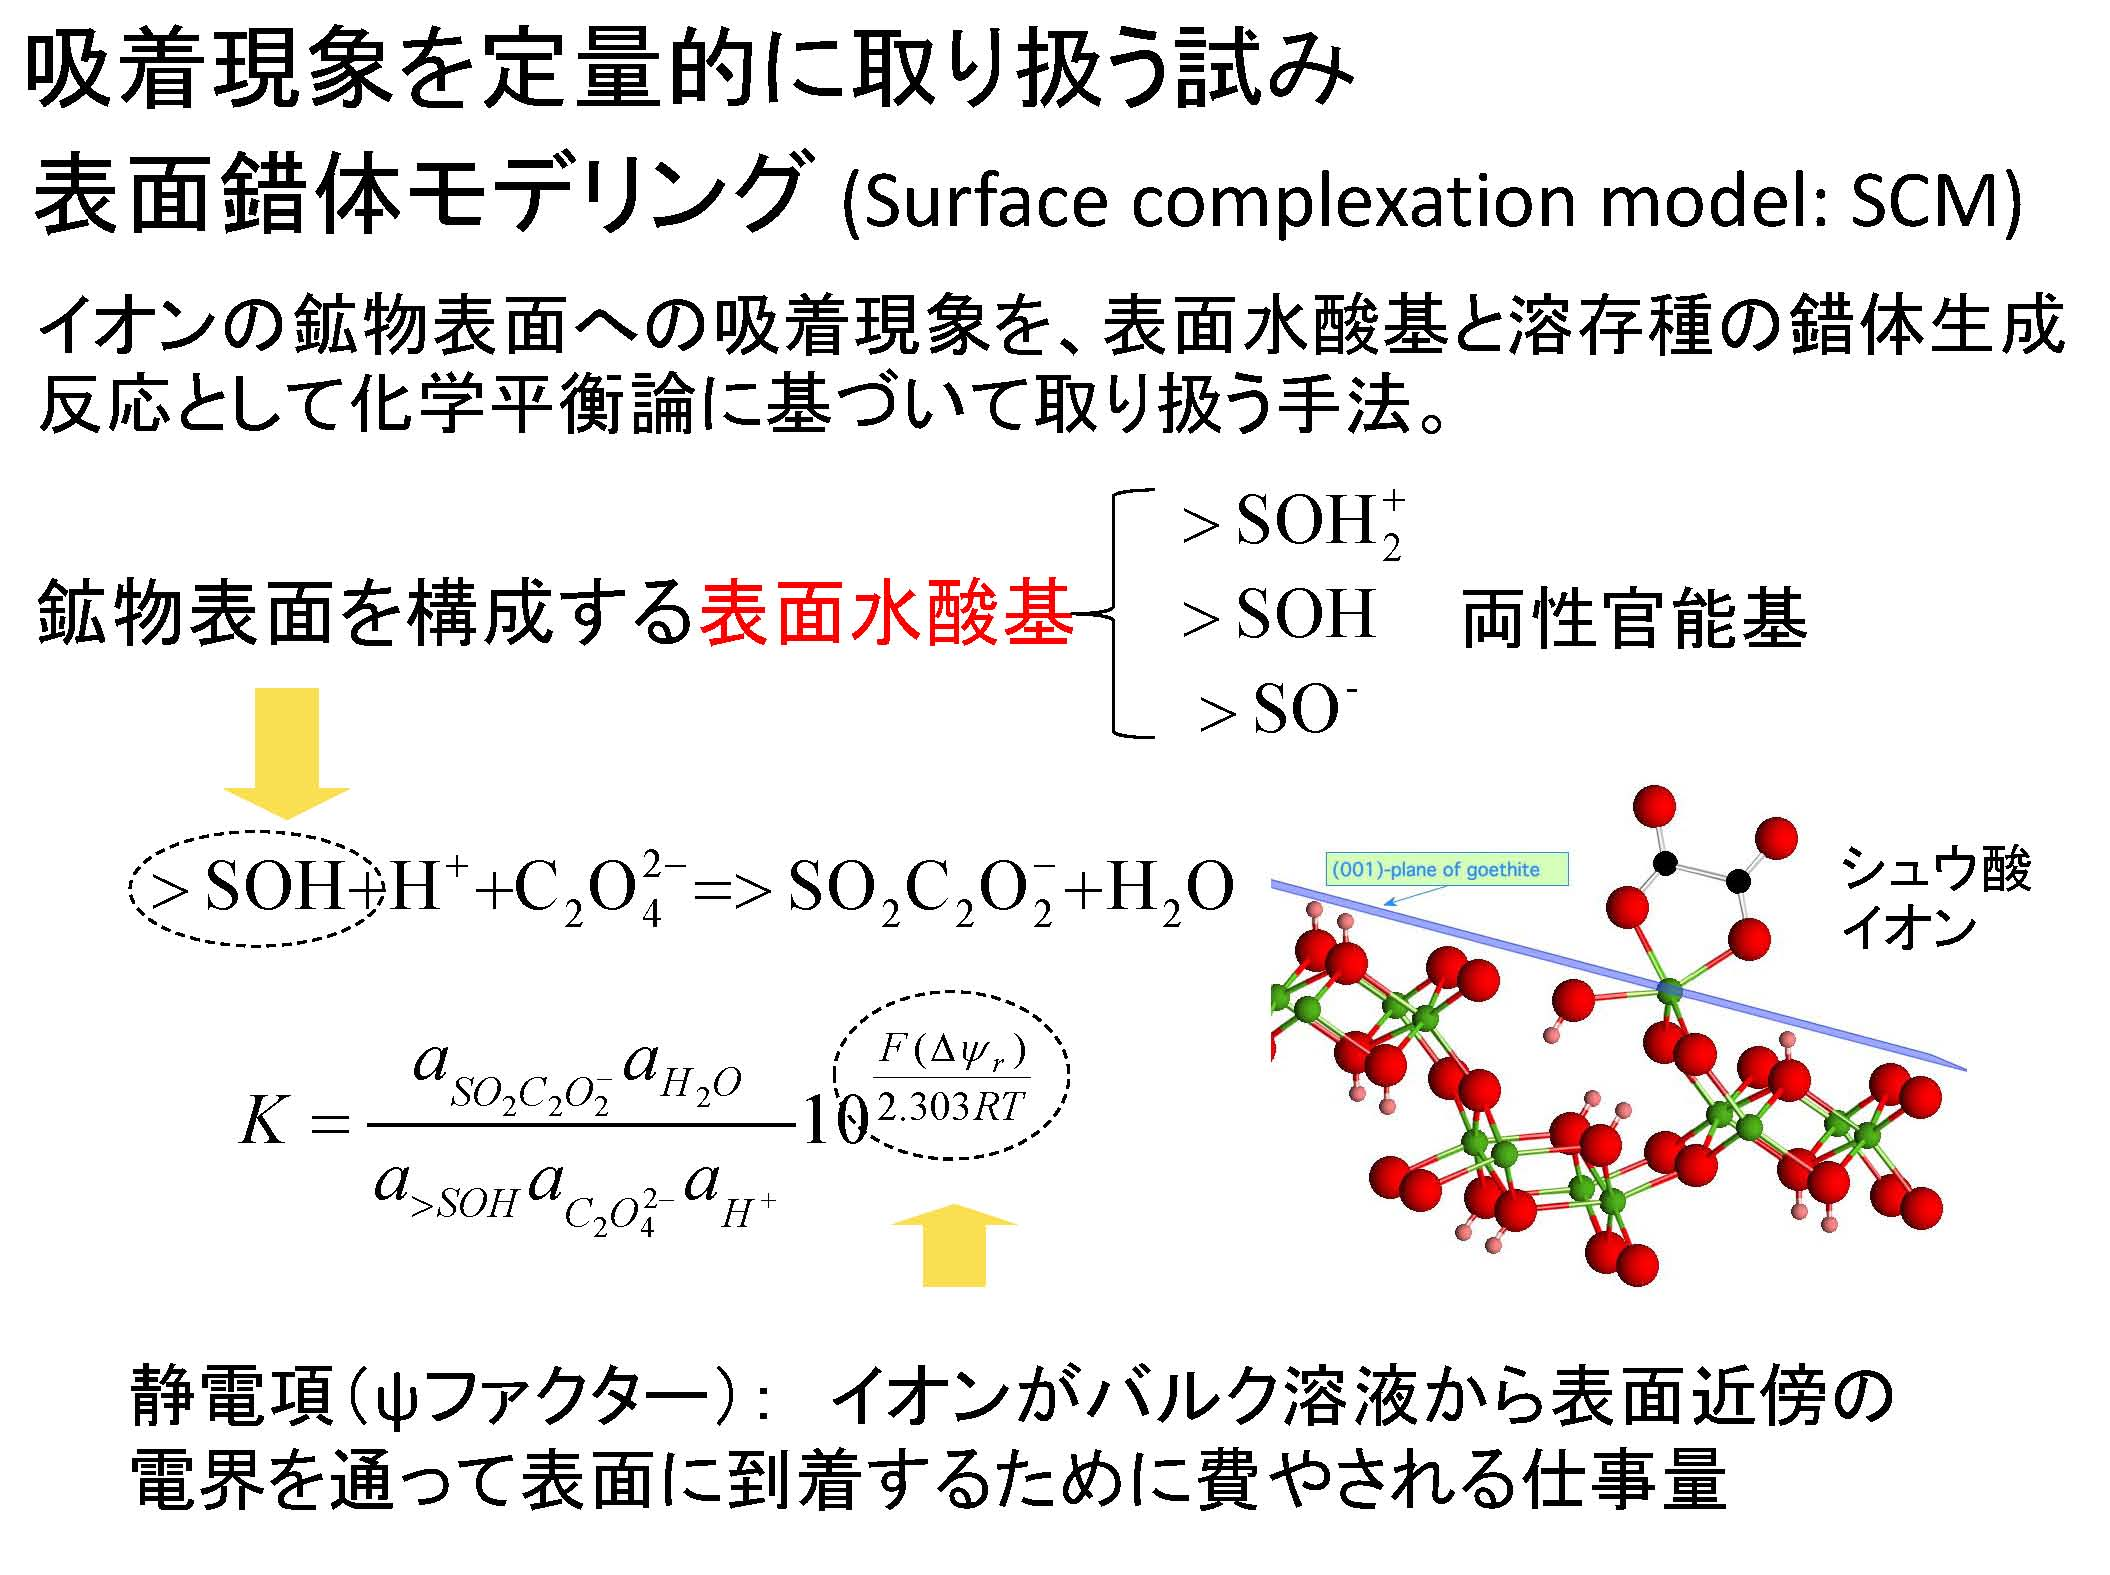 Prediction of solute adsorption on mineral by surface complexation model